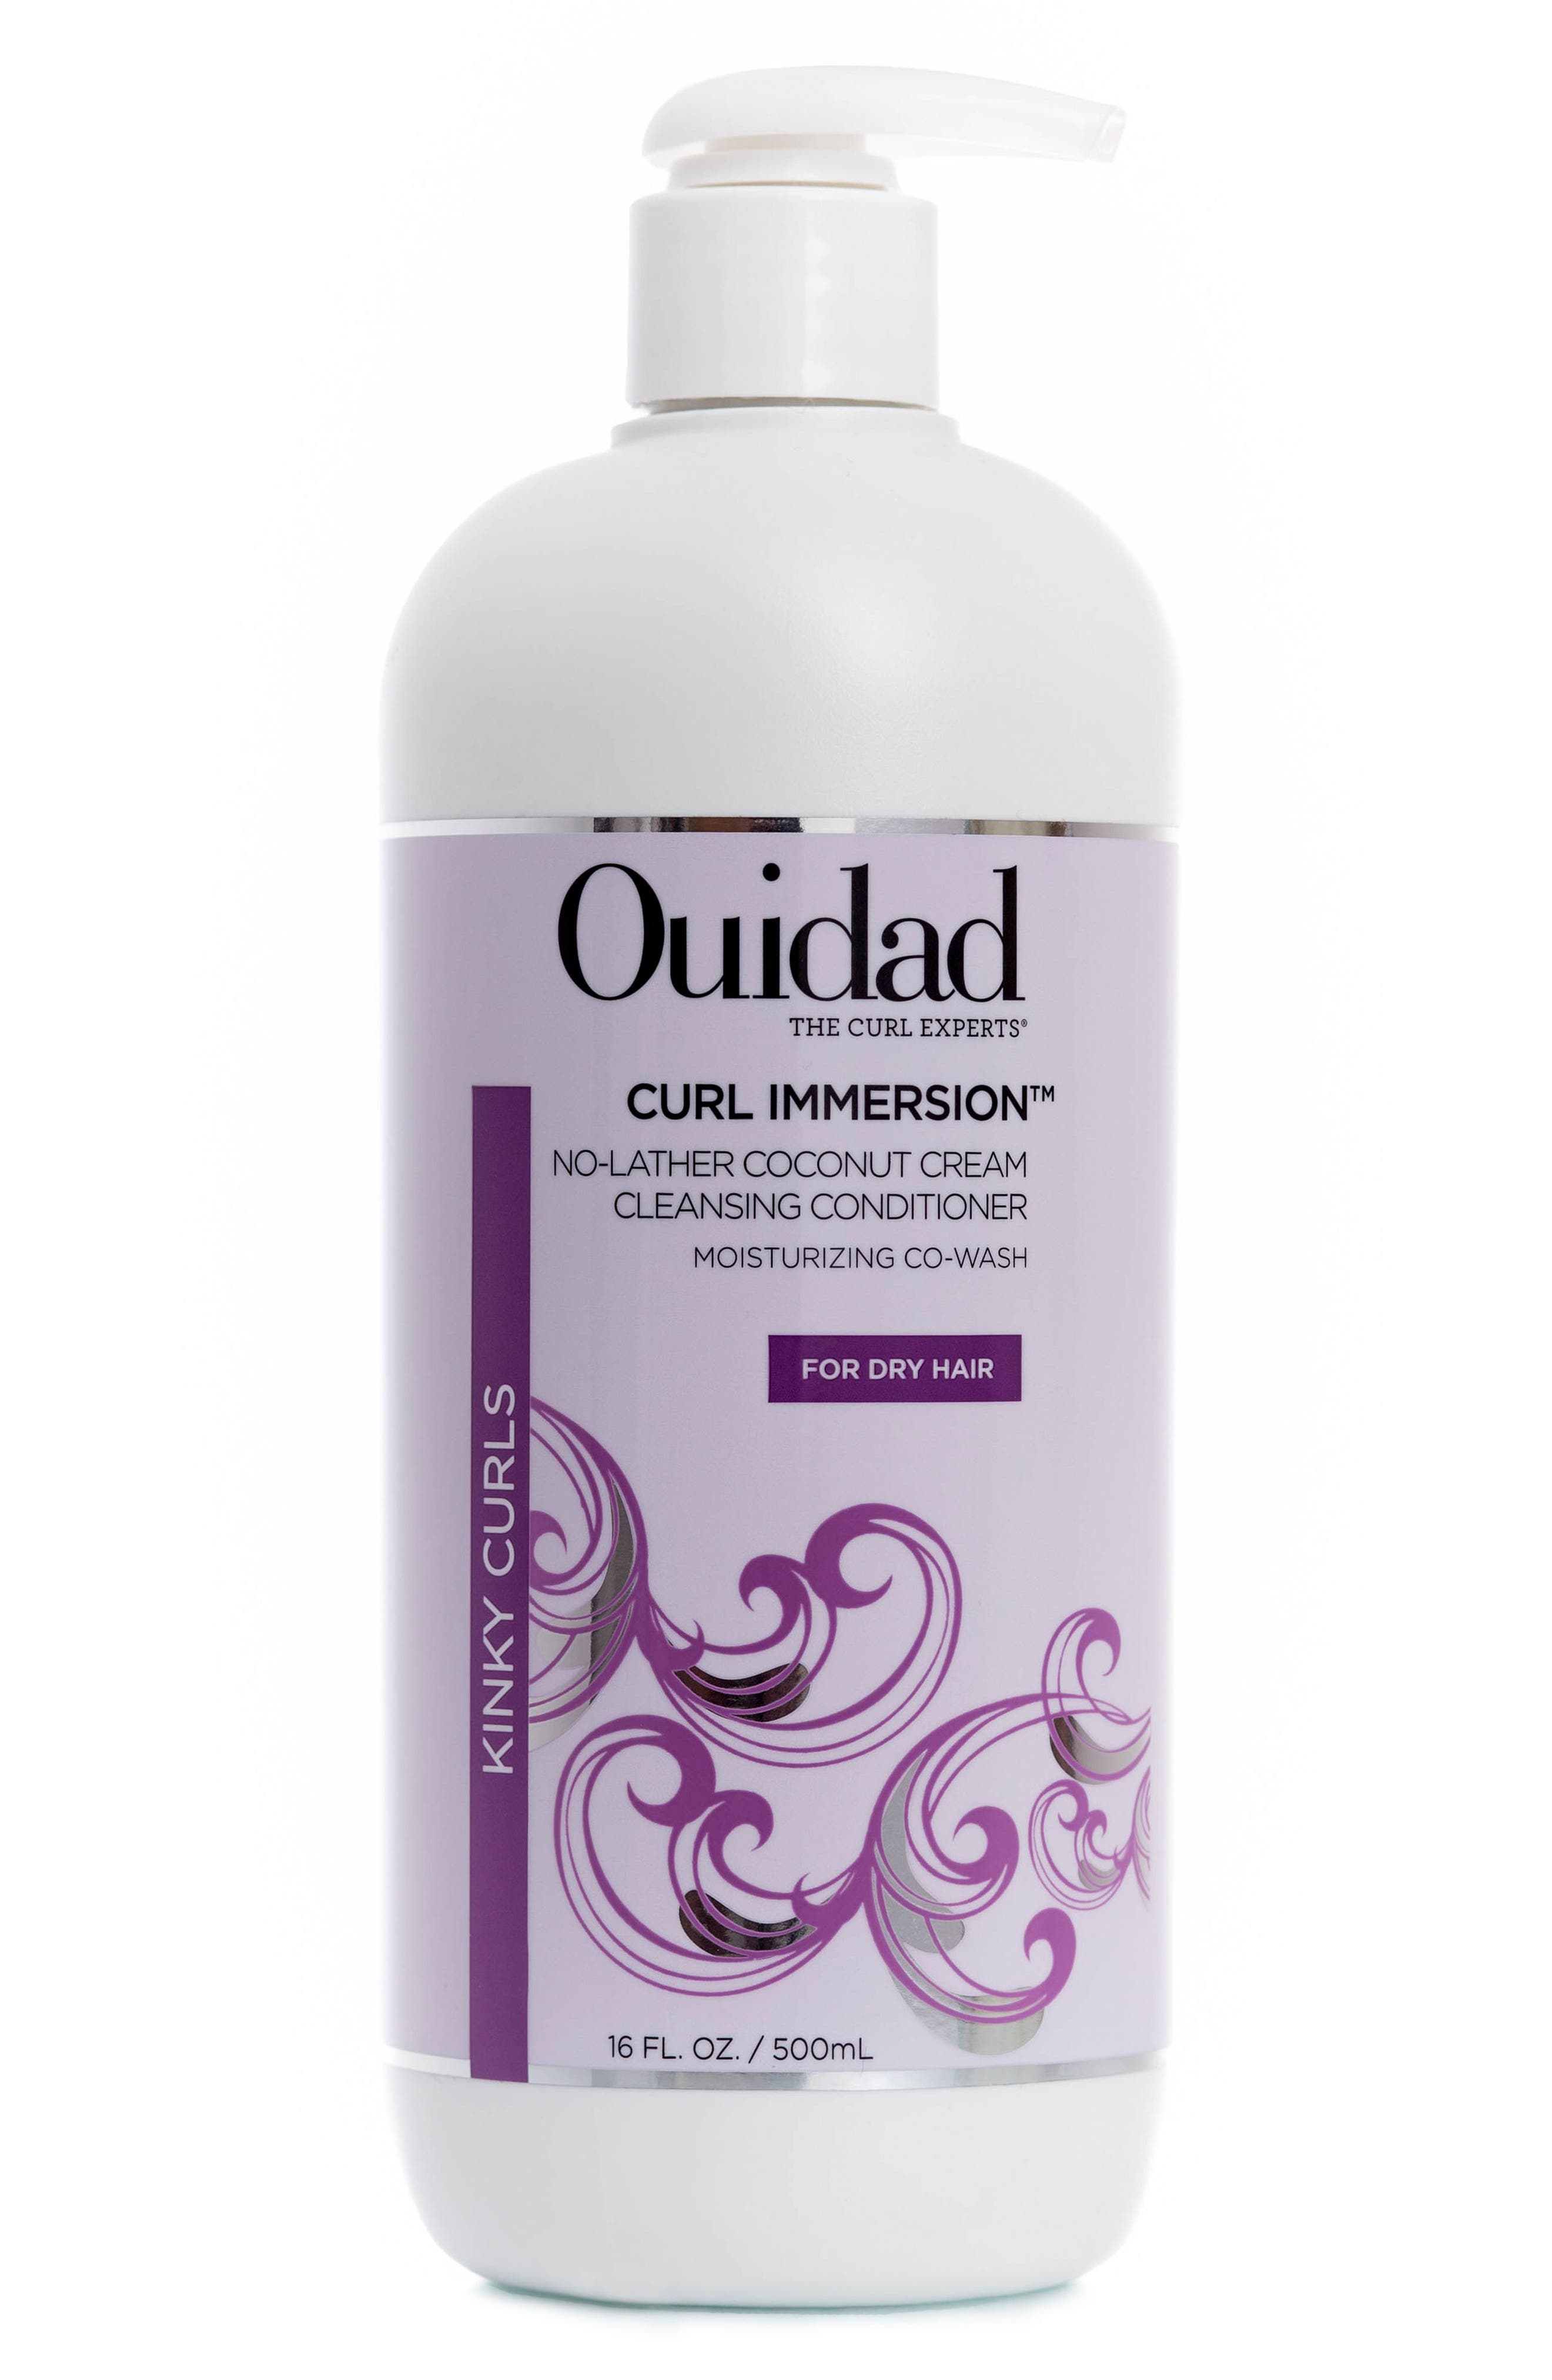 Main Image - Ouidad Curl Immersion™ No-Lather Coconut Cream Cleansing Conditioner